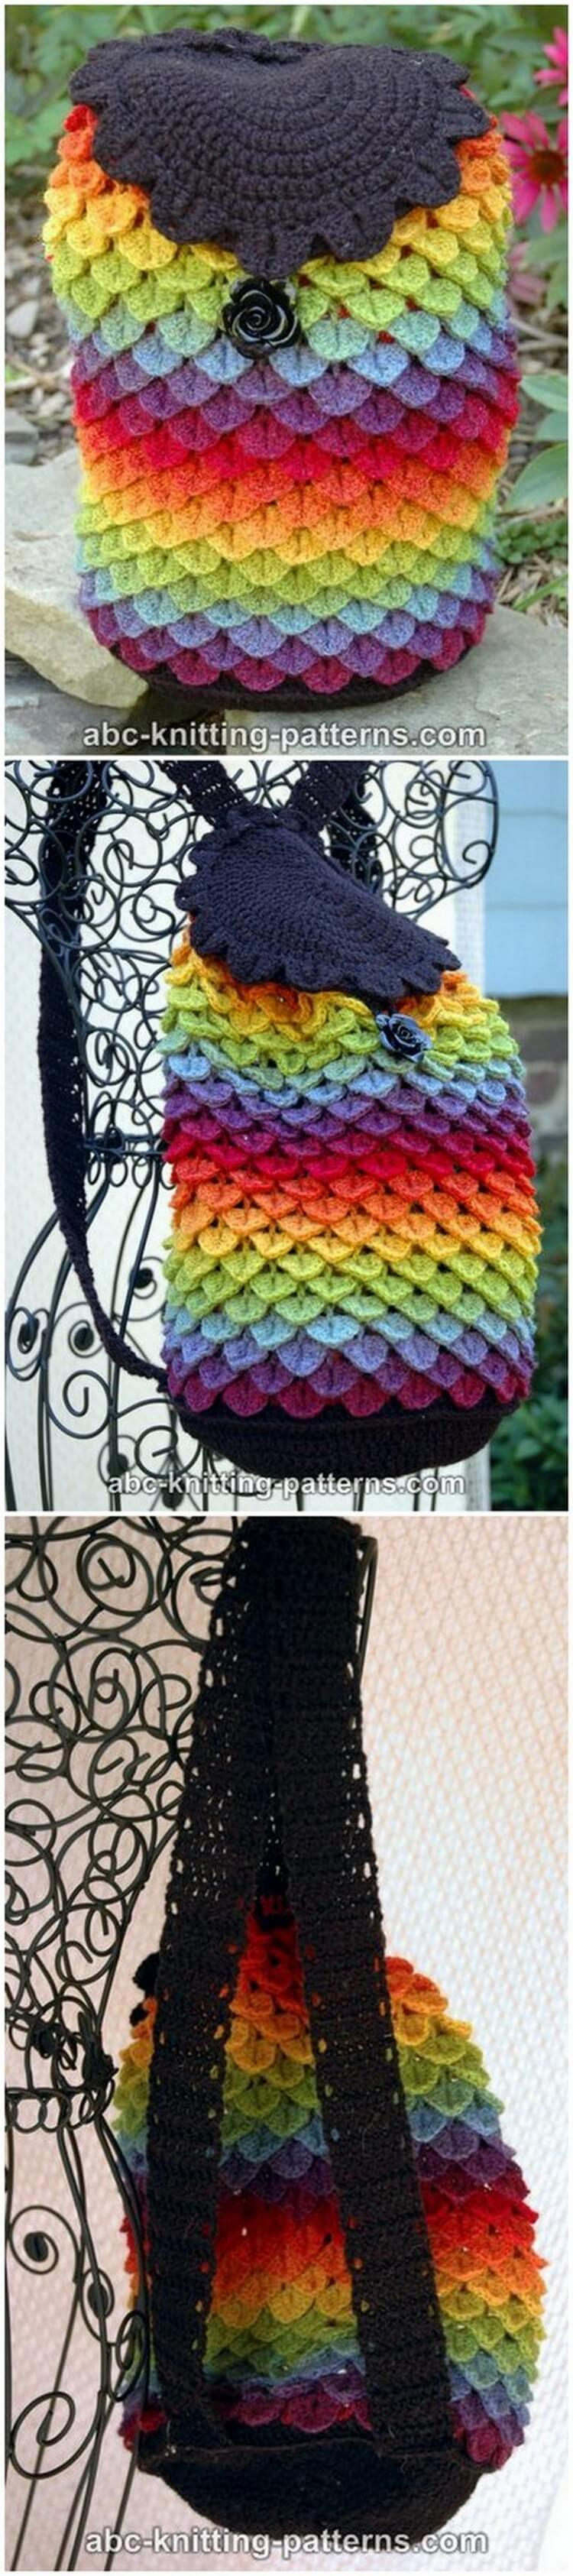 Crochet Backpack Pattern (53)